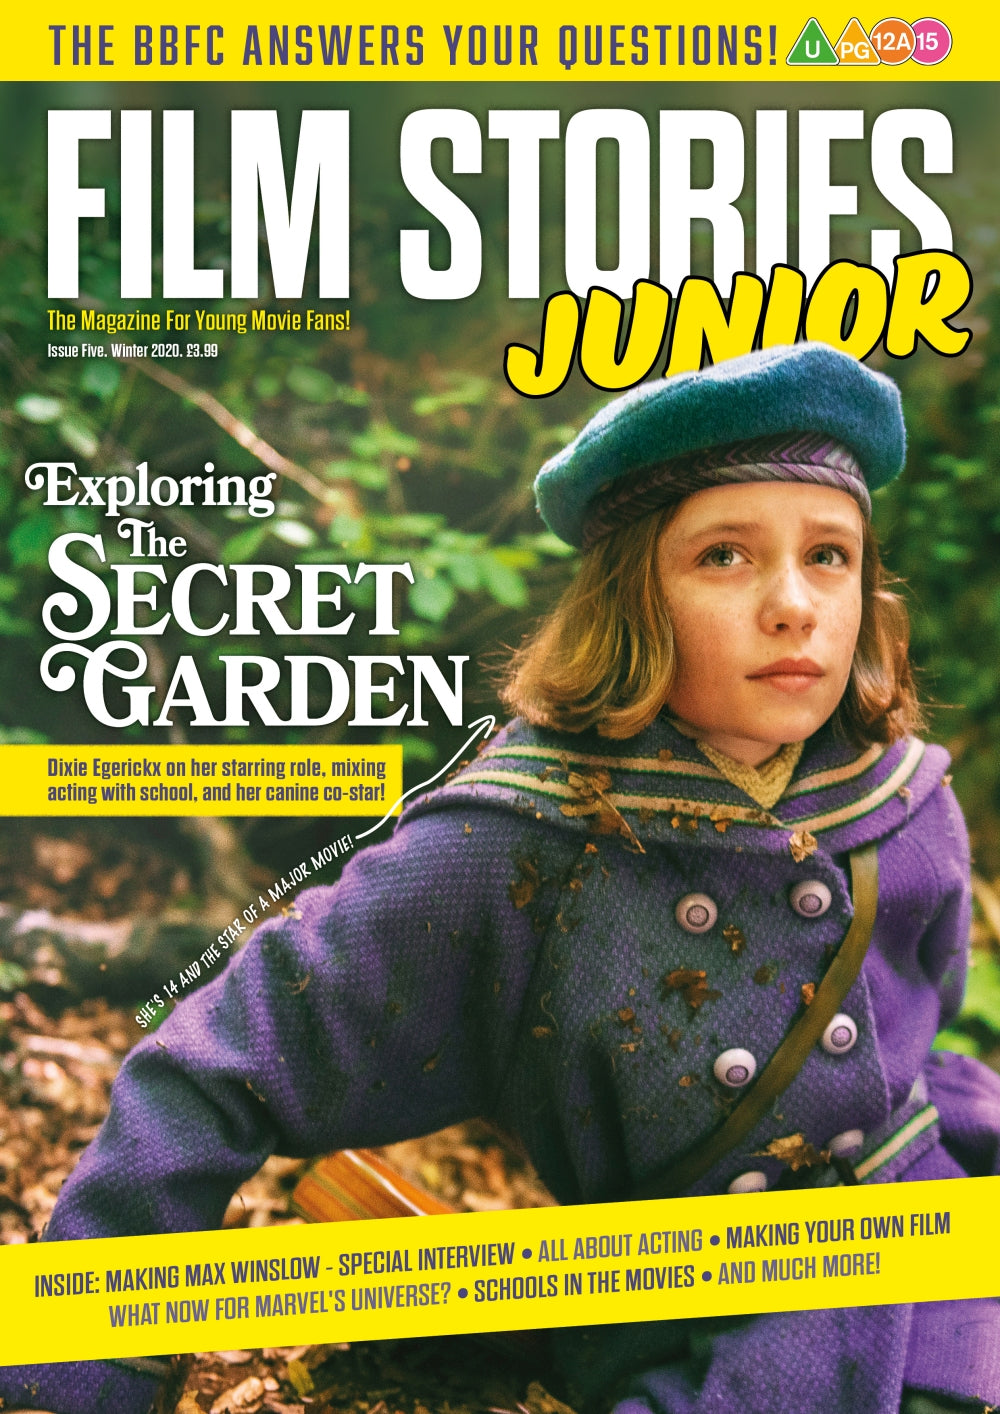 Film Stories Junior issue 5 (winter 2020)